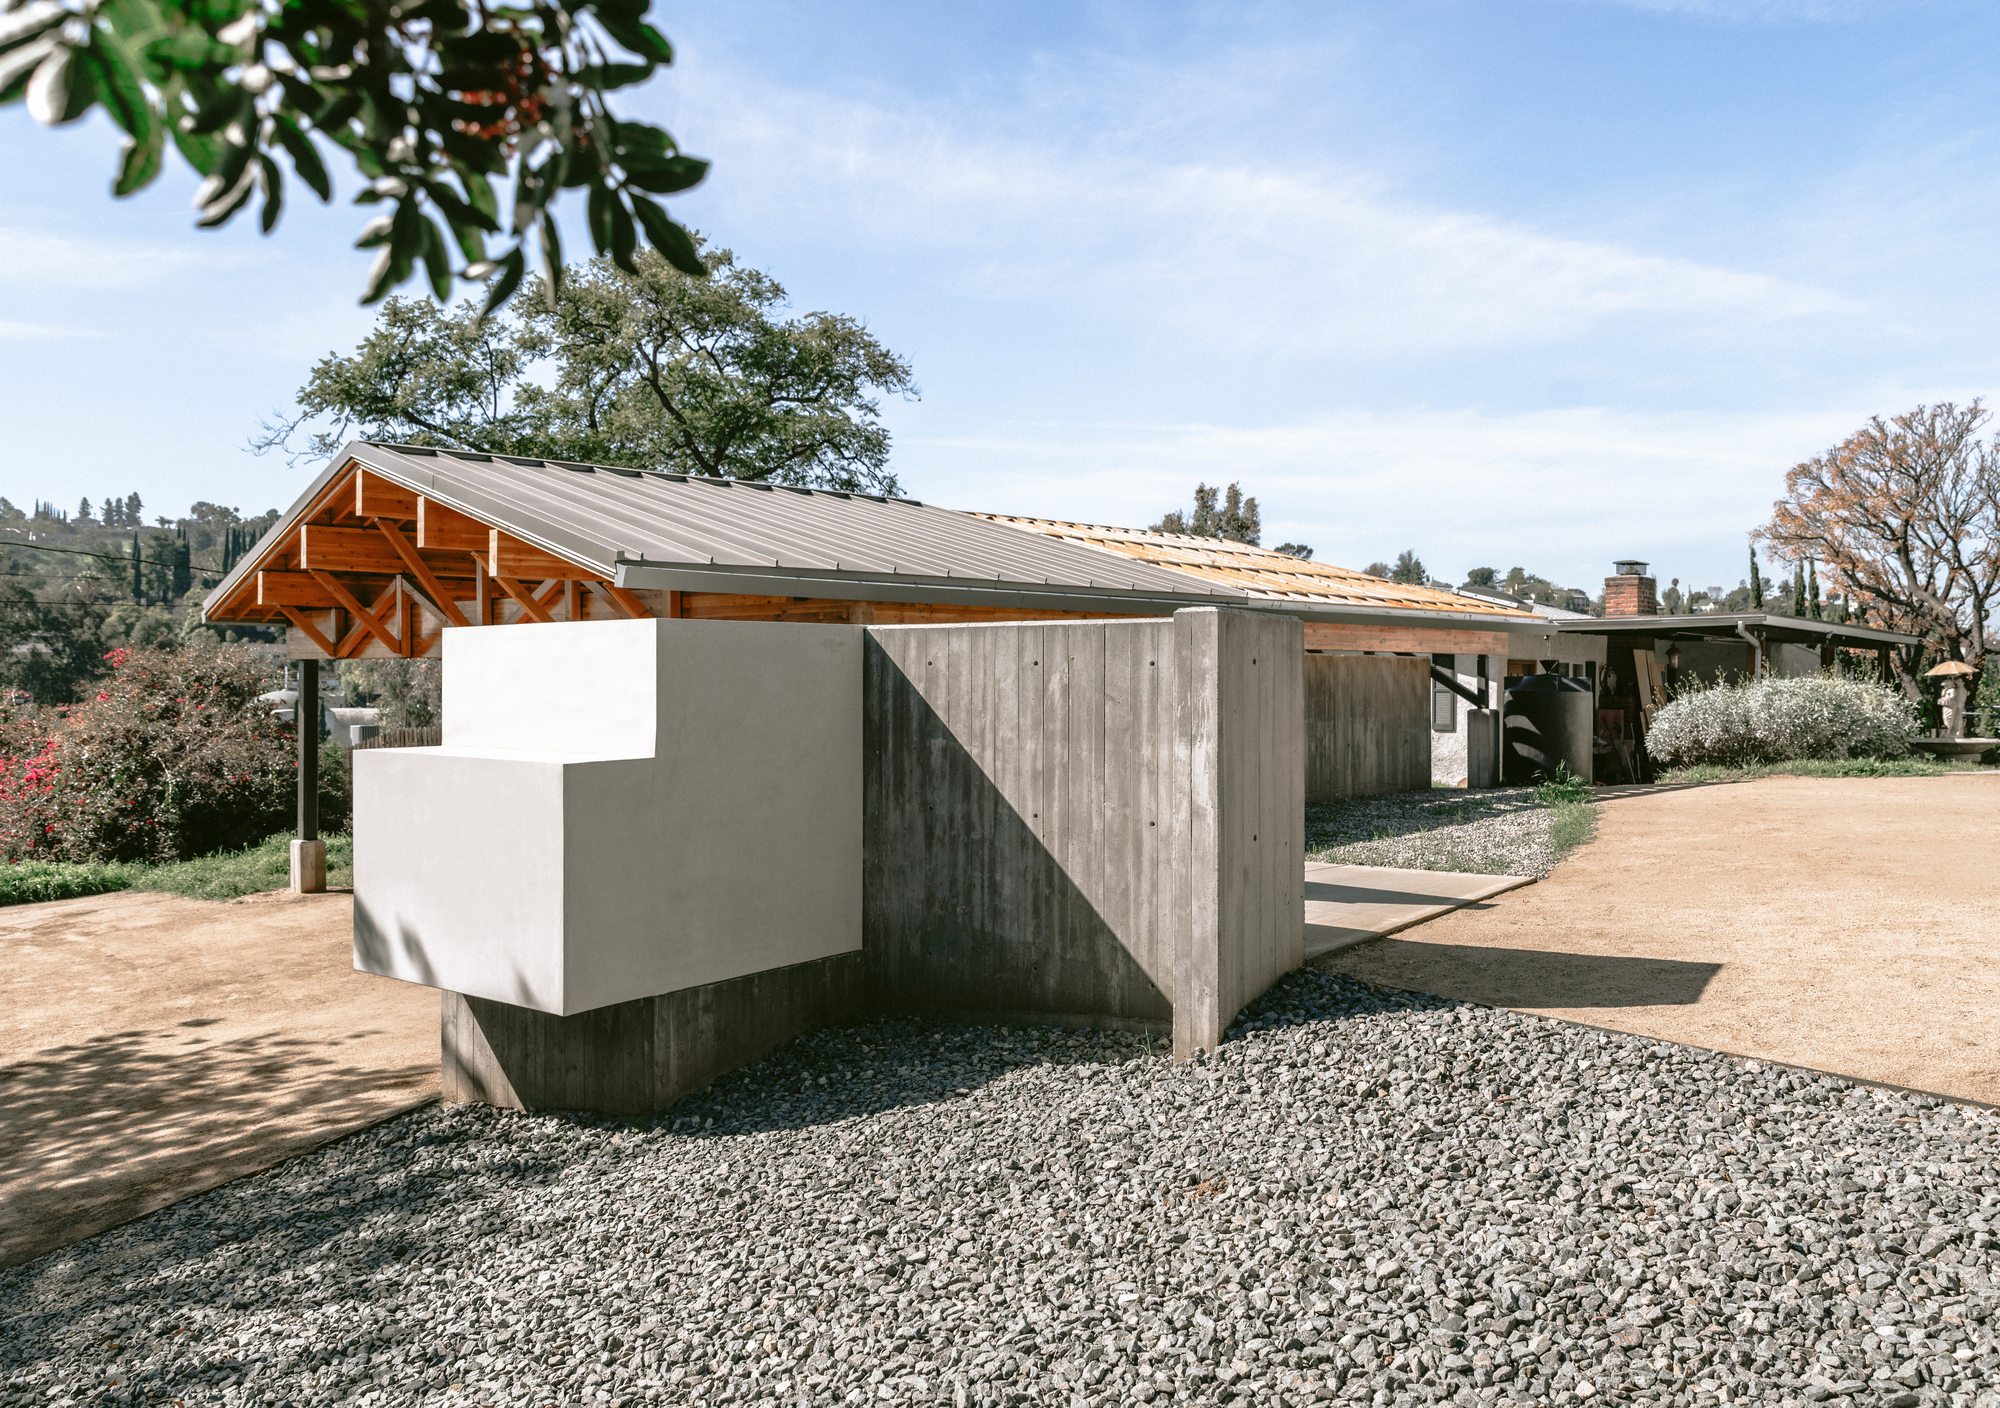 House in Los Angeles 1 Art Studio and Residential Compound / The LADG